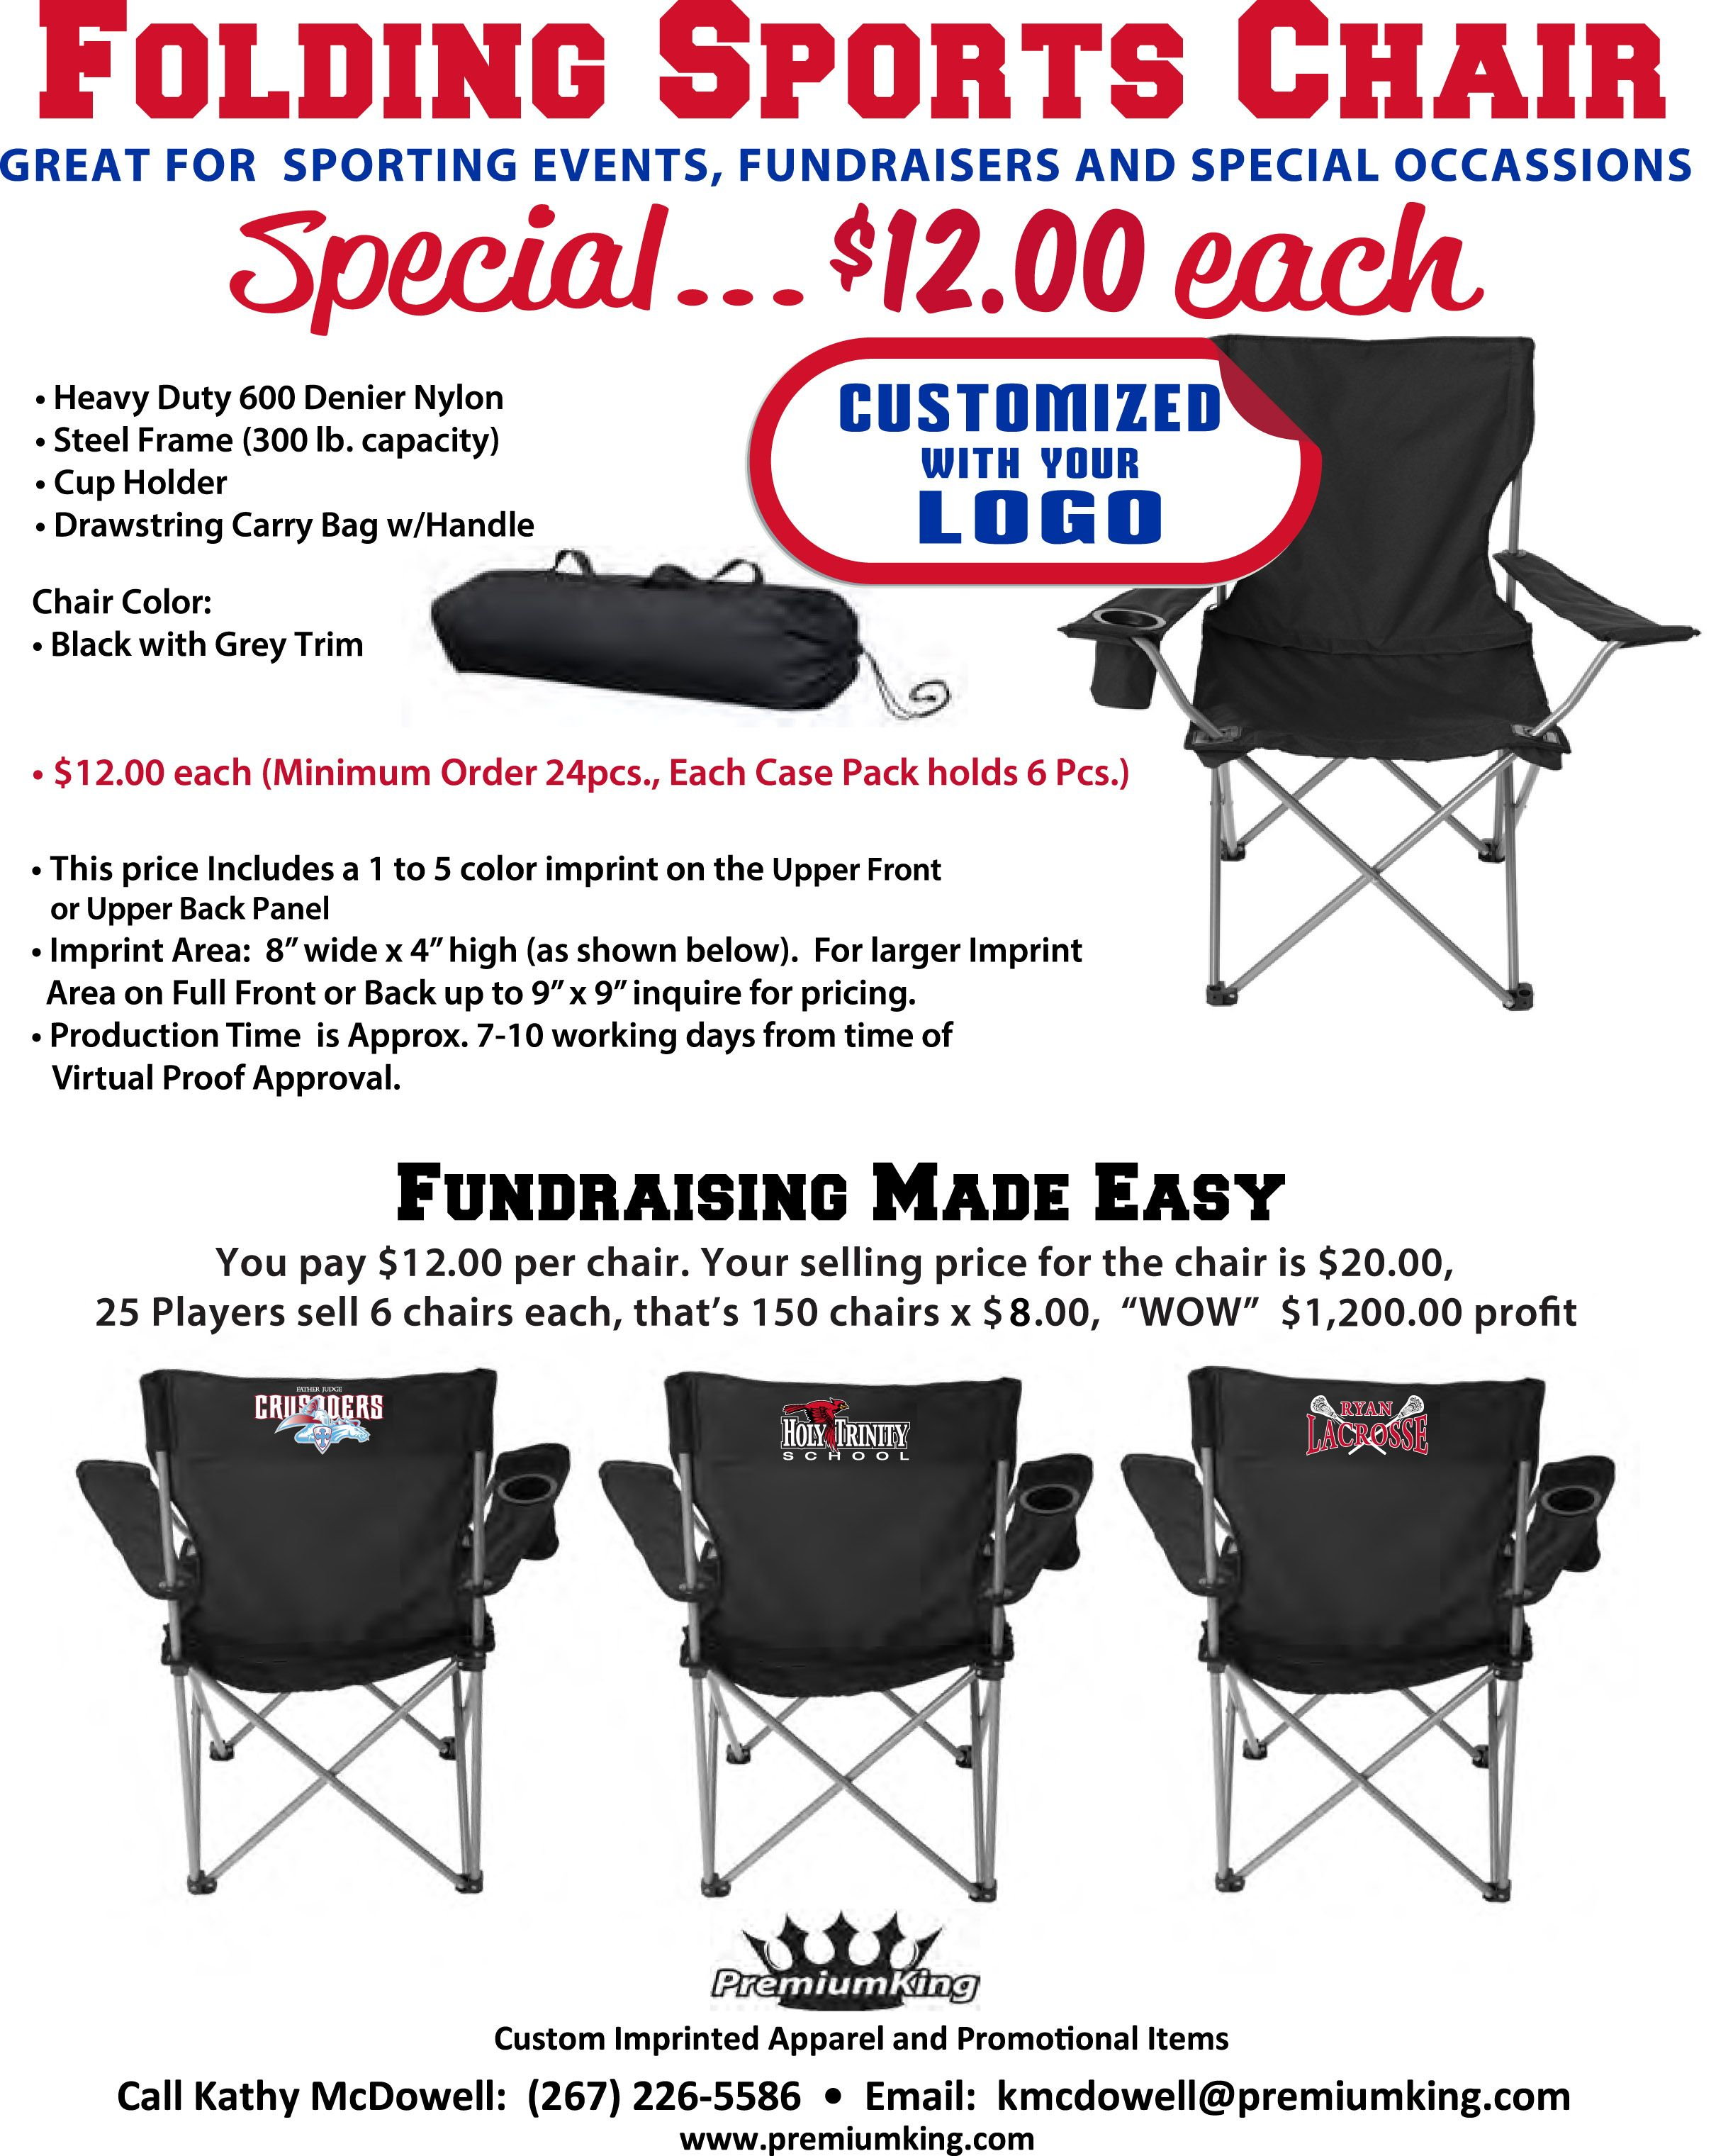 Fundraiser Idea - Folding sports chairs with team logo | Fundraising ...